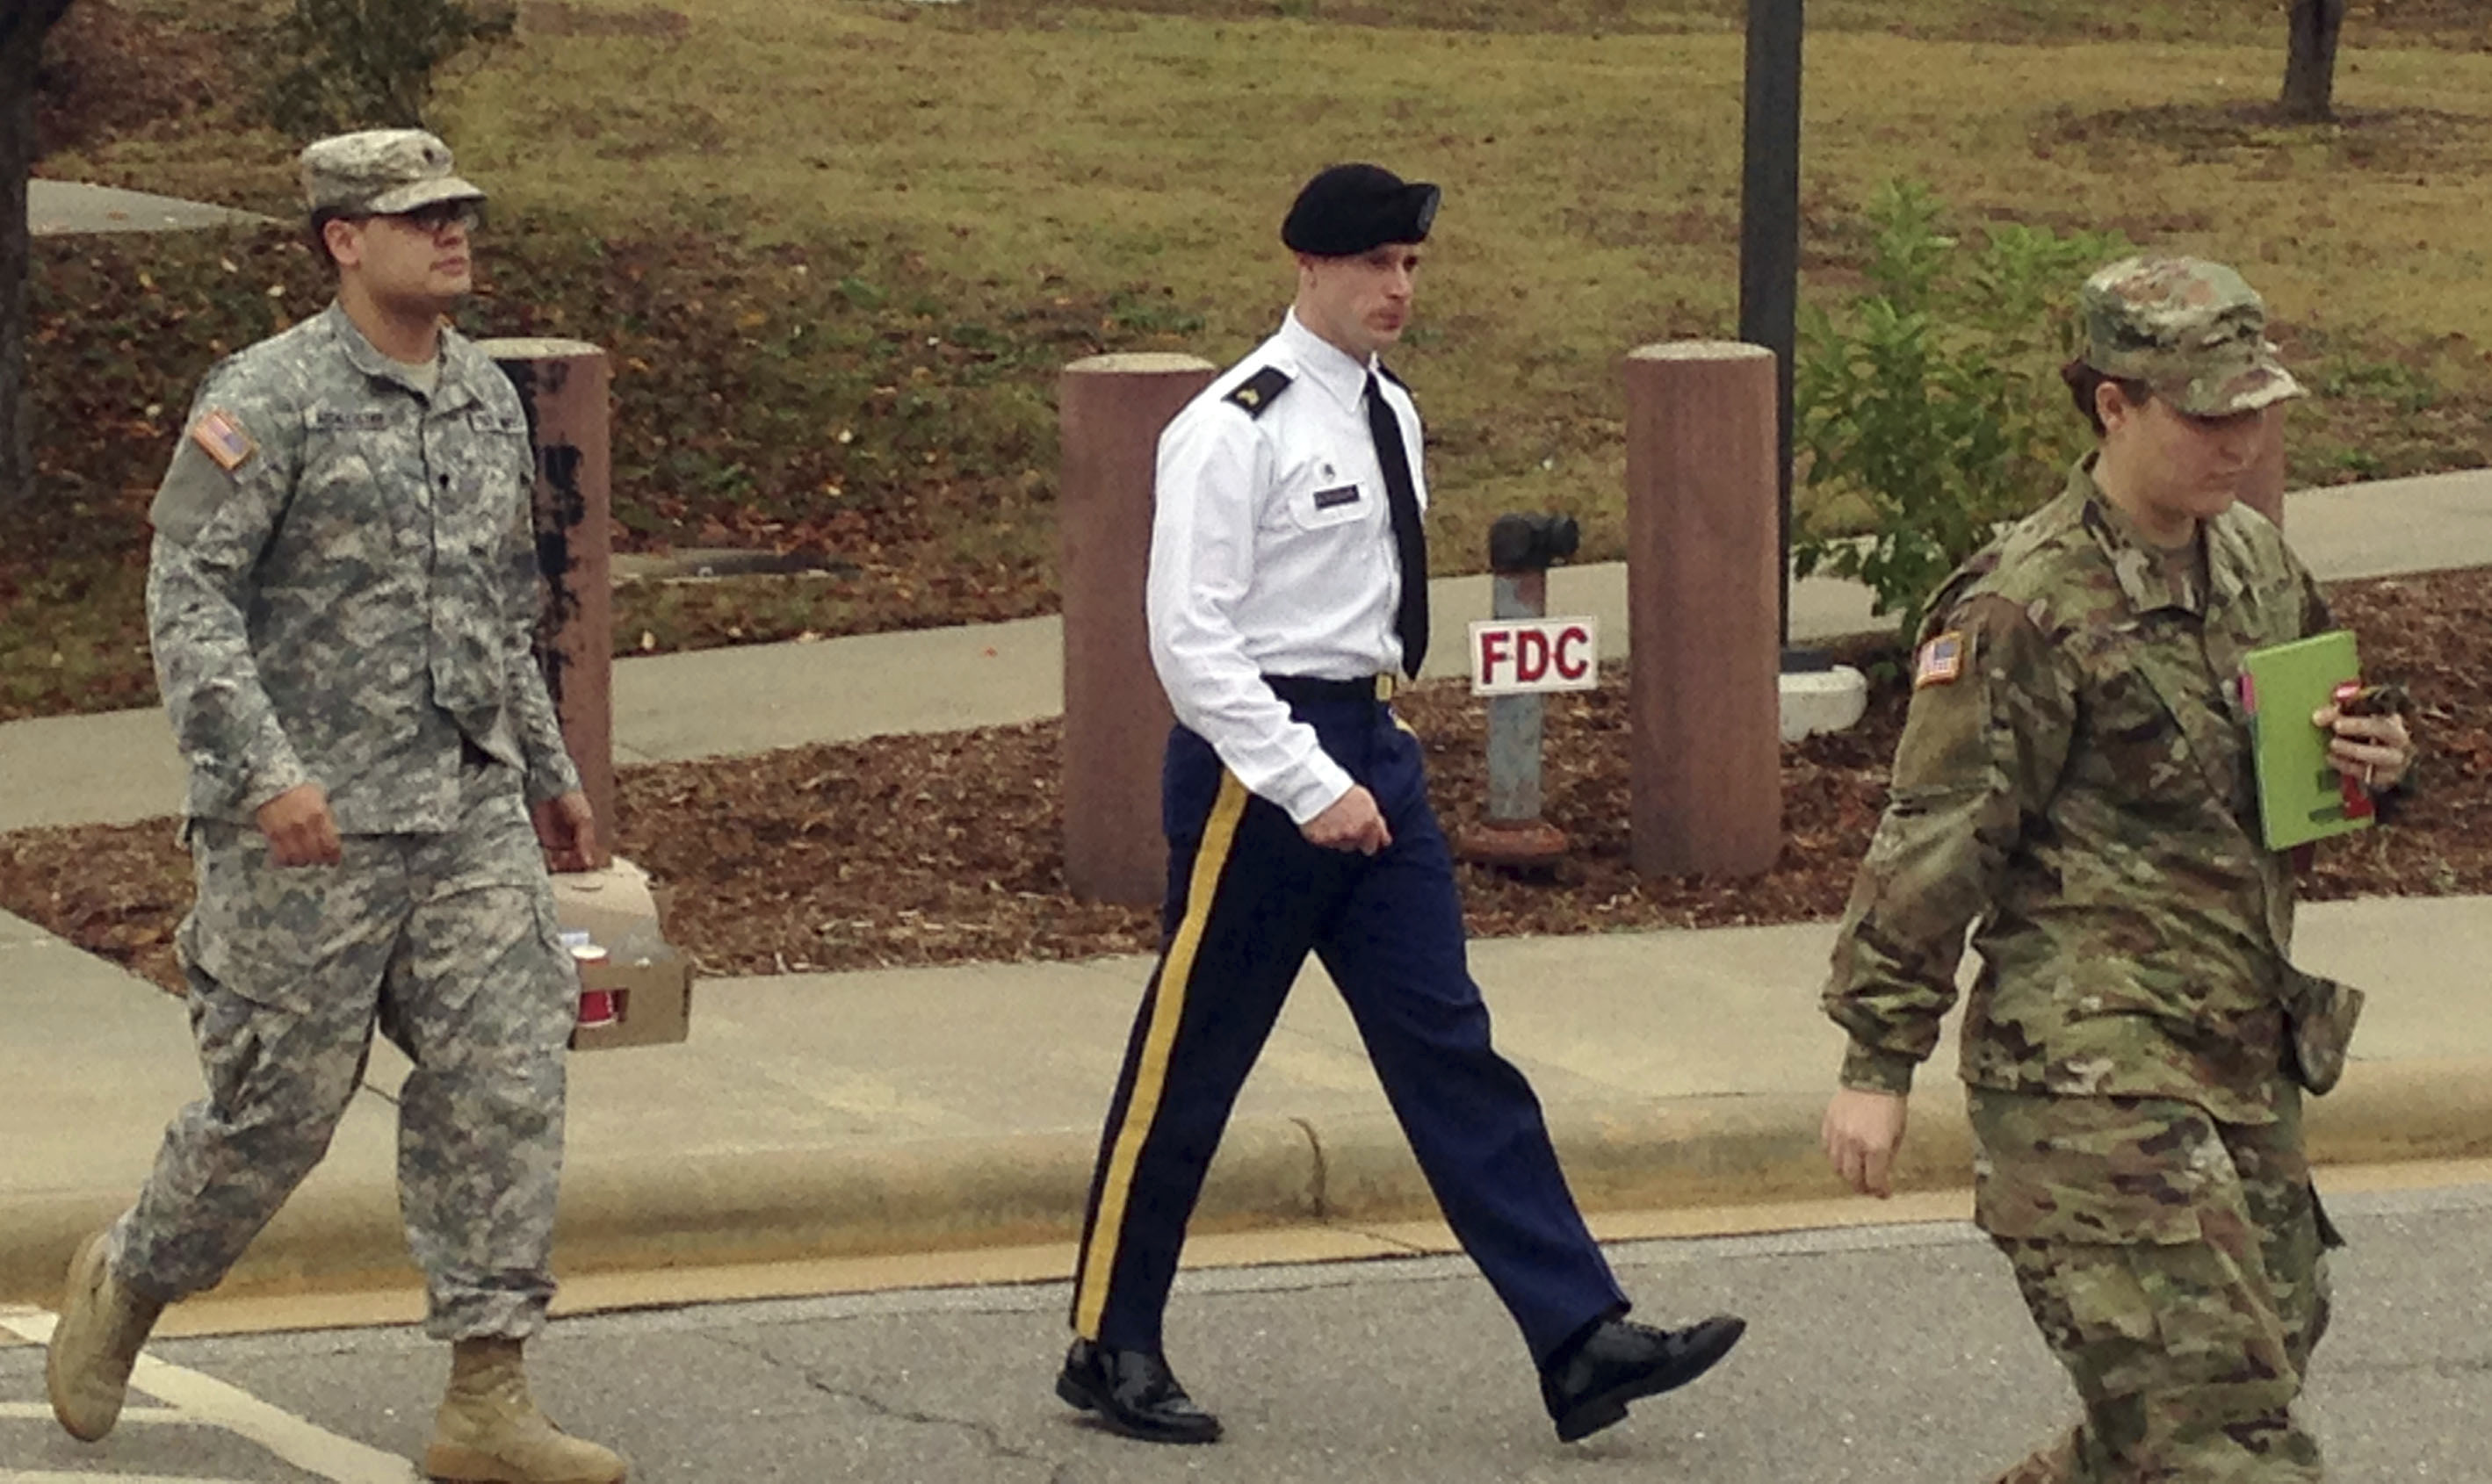 Searchers' injuries can be considered at Bergdahl sentencing, if convicted